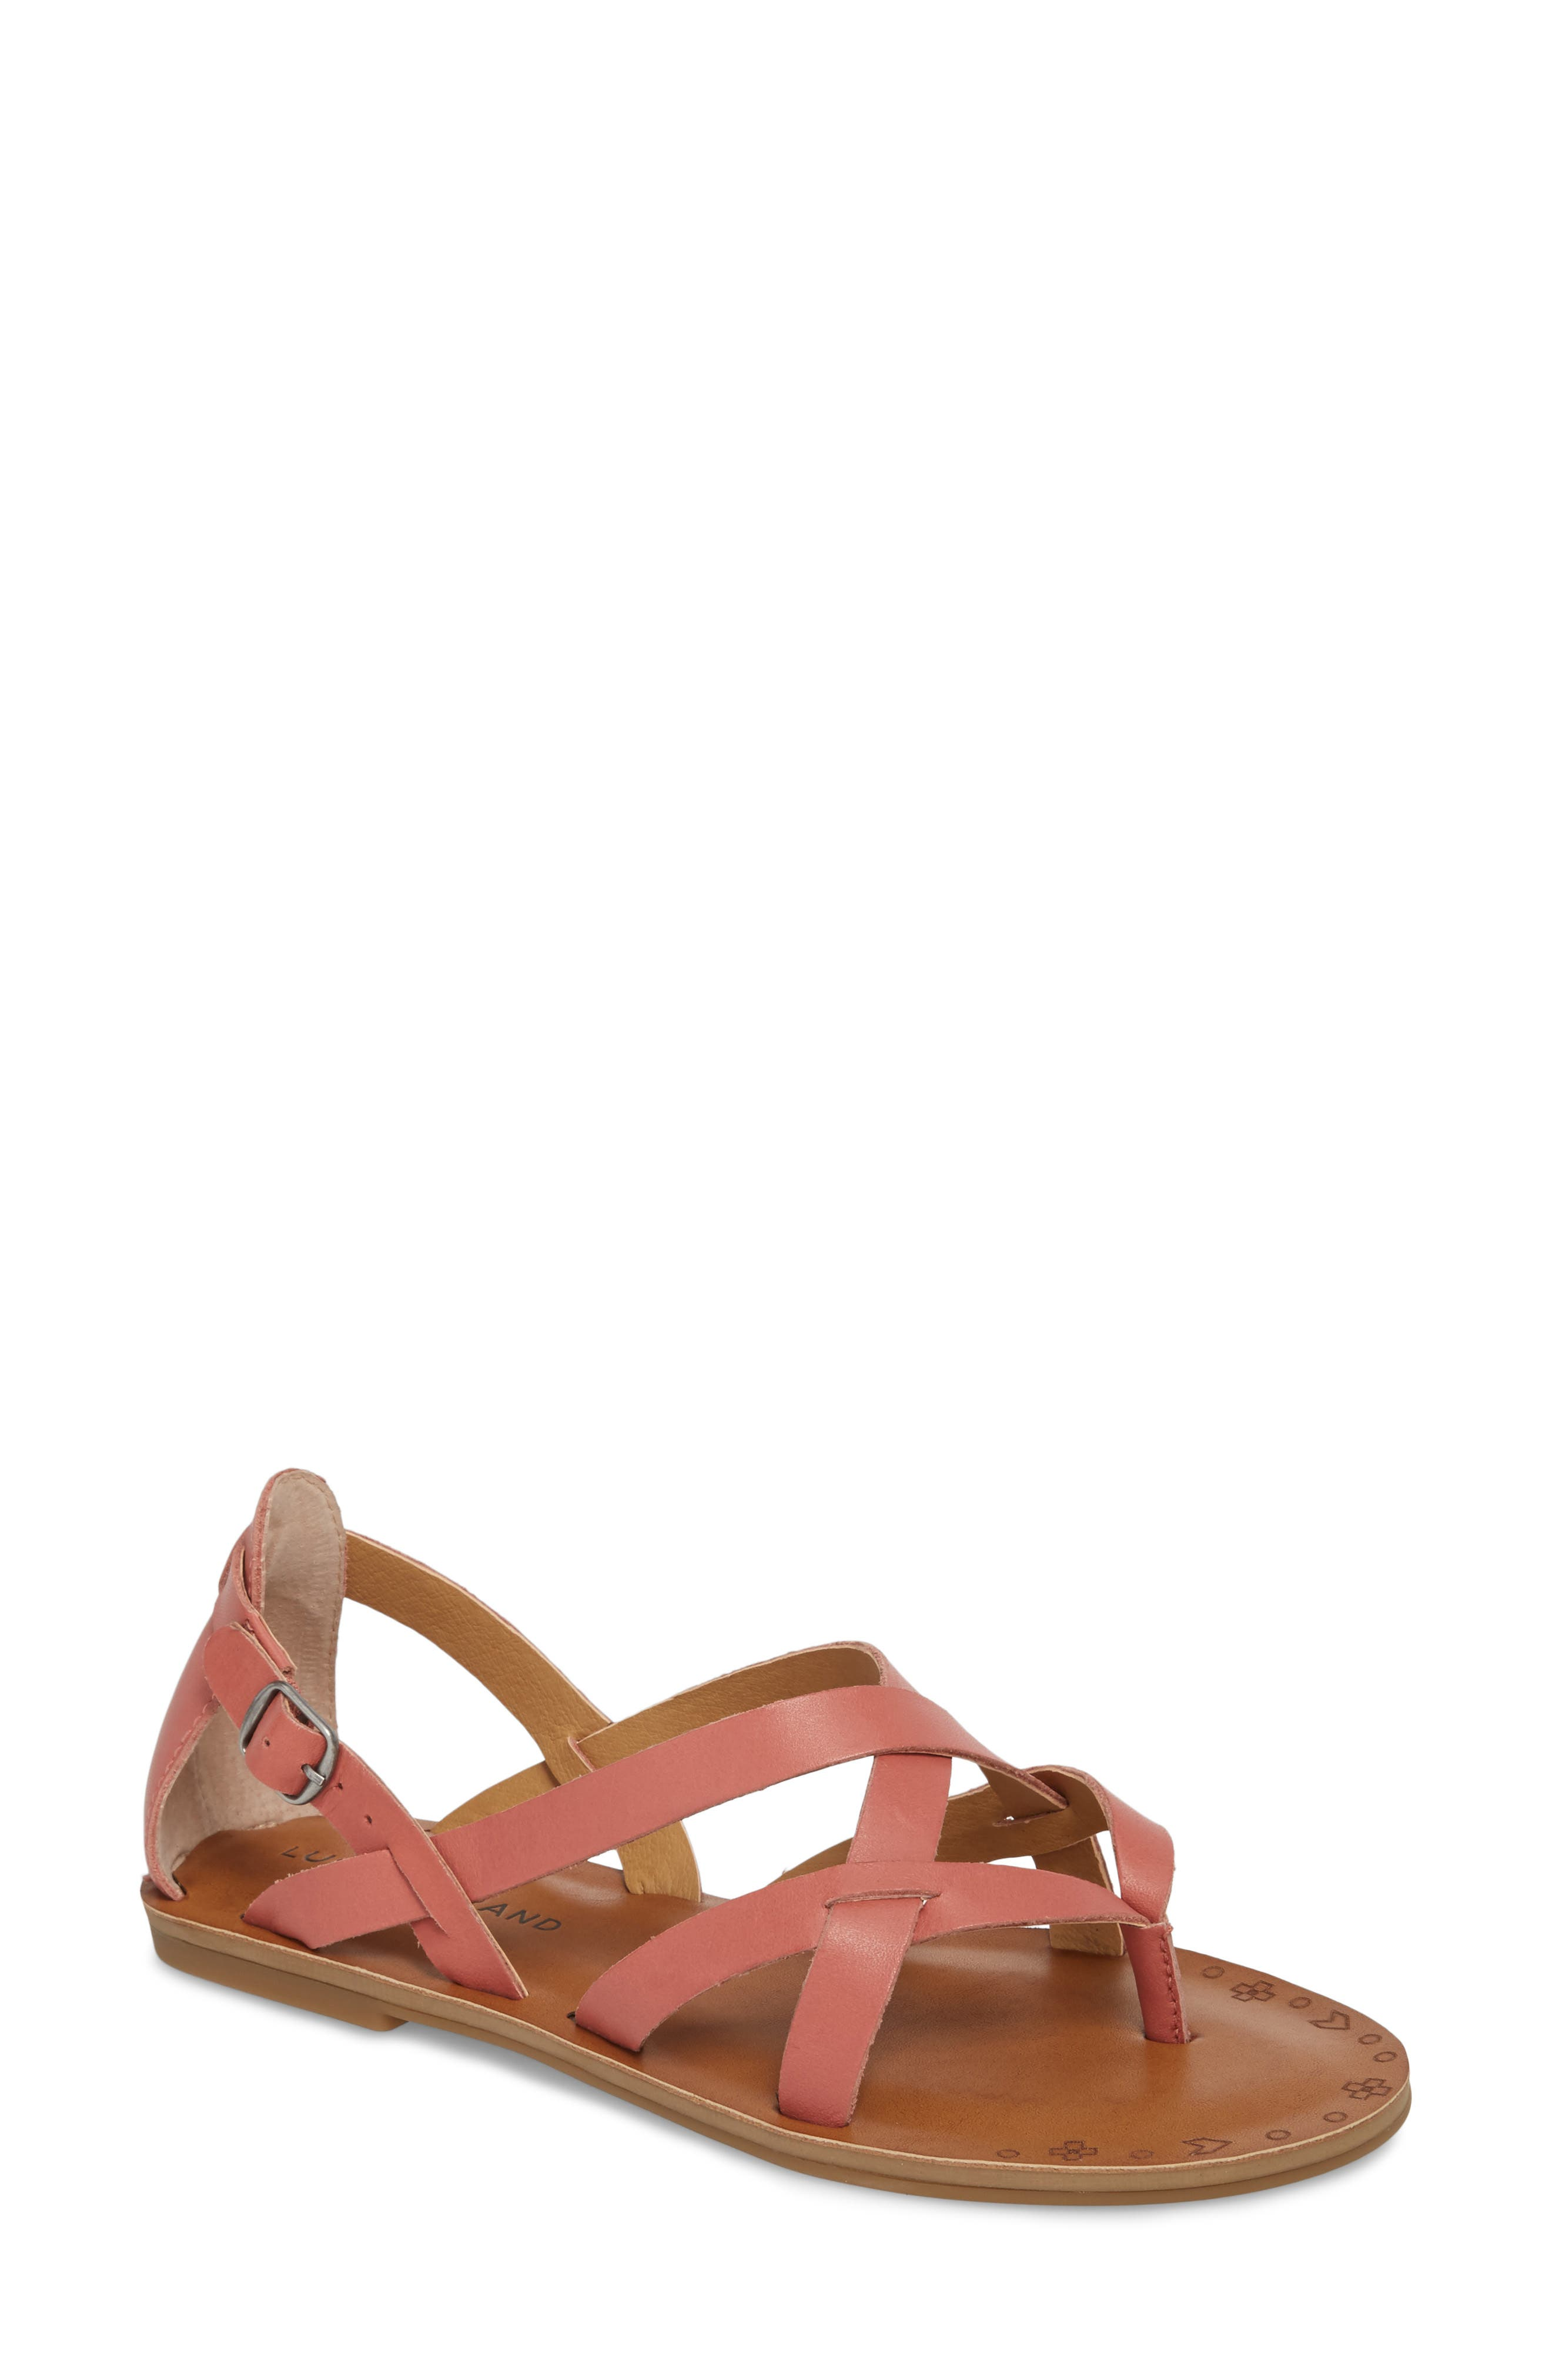 Ainsley Flat Sandal,                         Main,                         color, Canyon Rose Leather